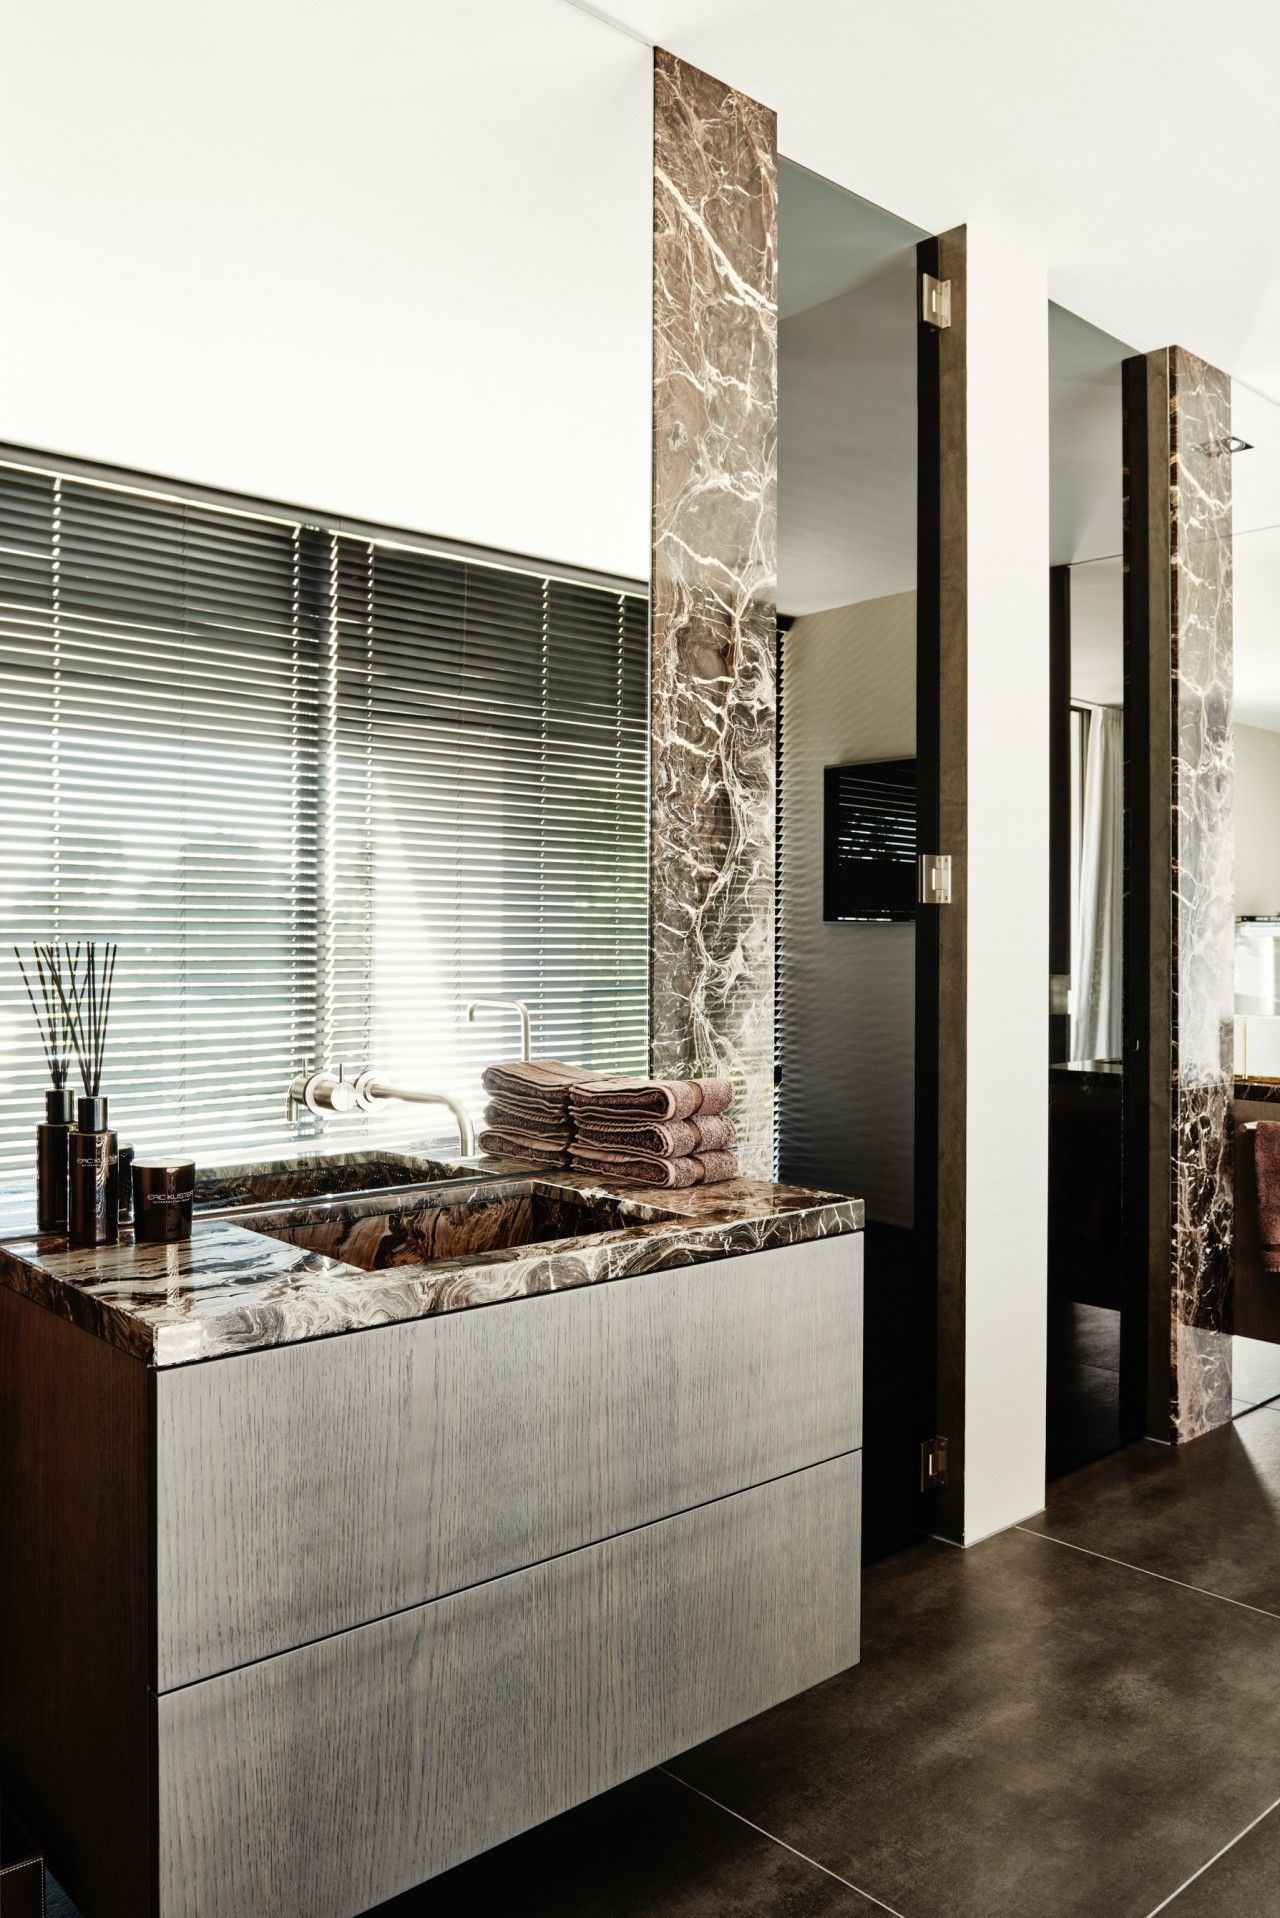 The Netherlands / Private Residence / Bath Room / Eric Kuster ...